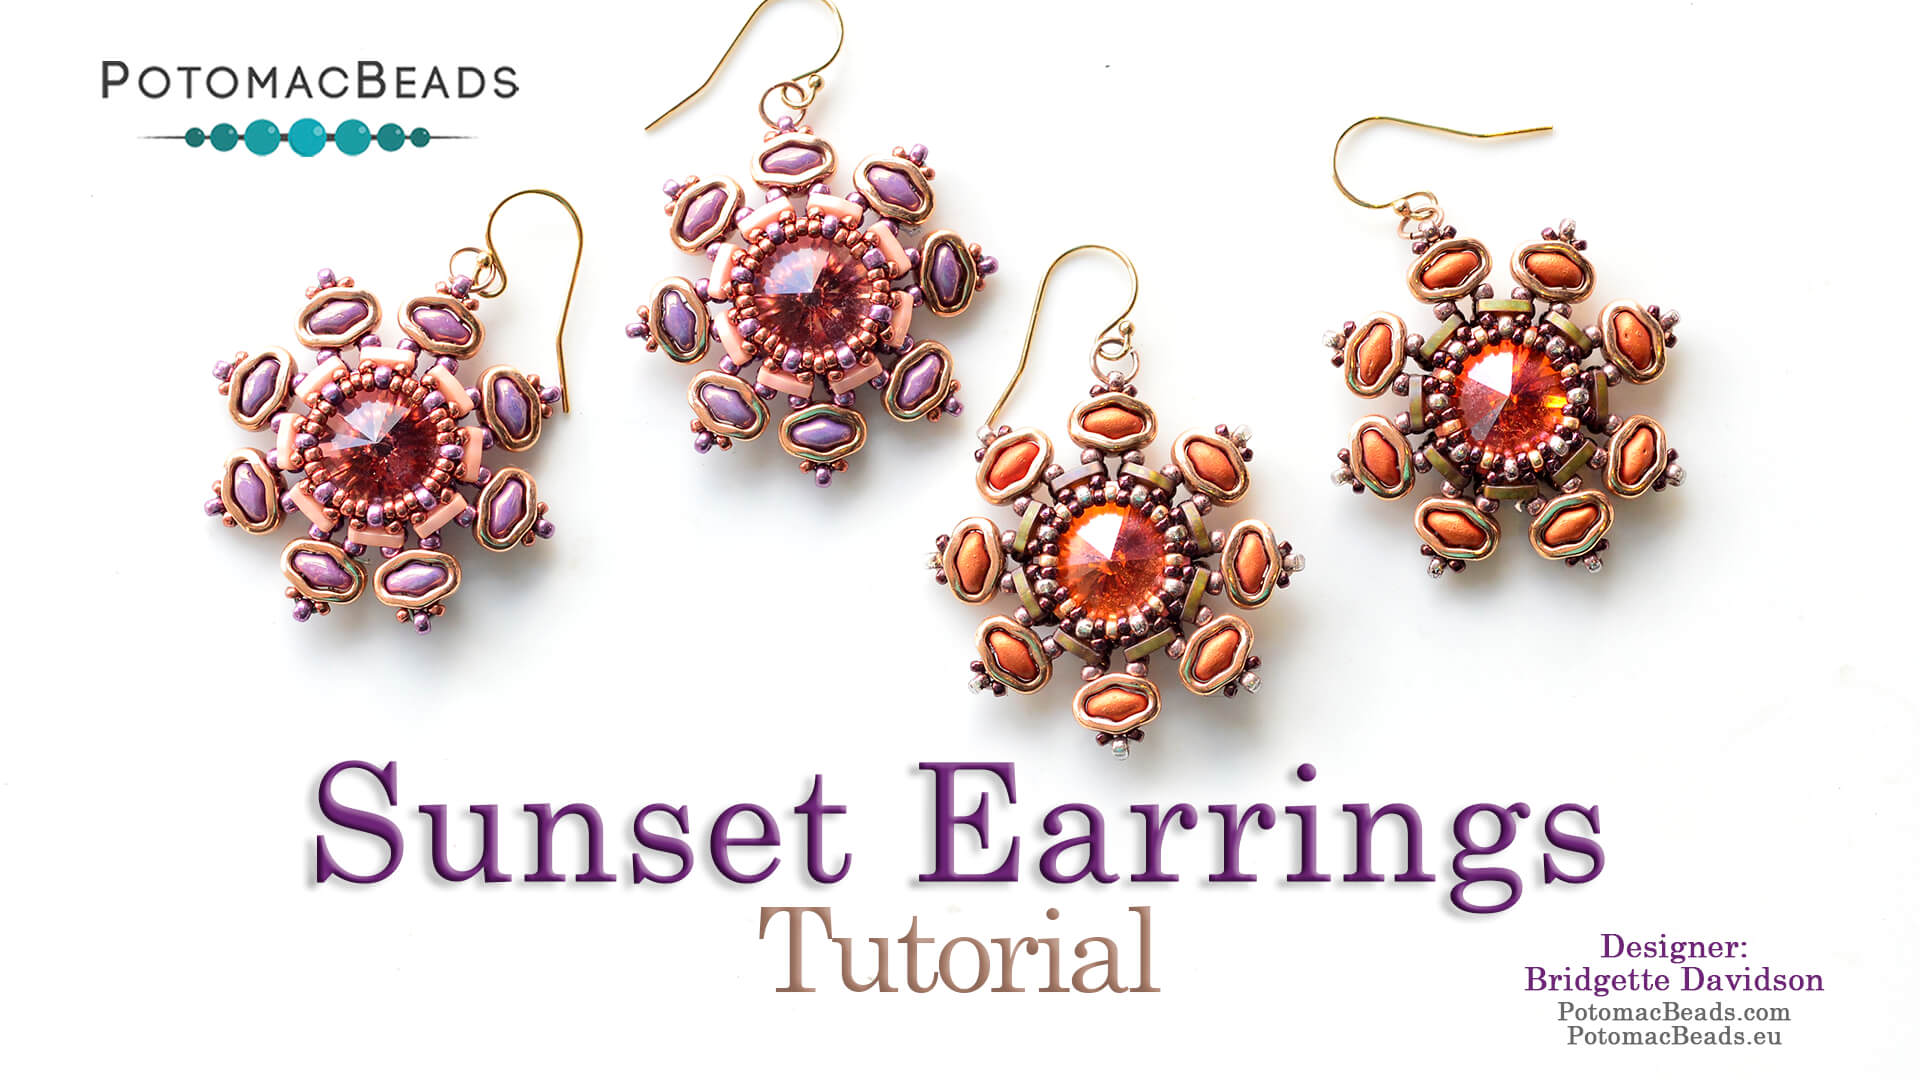 How to Bead Jewelry / Videos Sorted by Beads / RounDuo® & RounDuo® Mini Bead Videos / Sunset Earrings or Component Tutorial